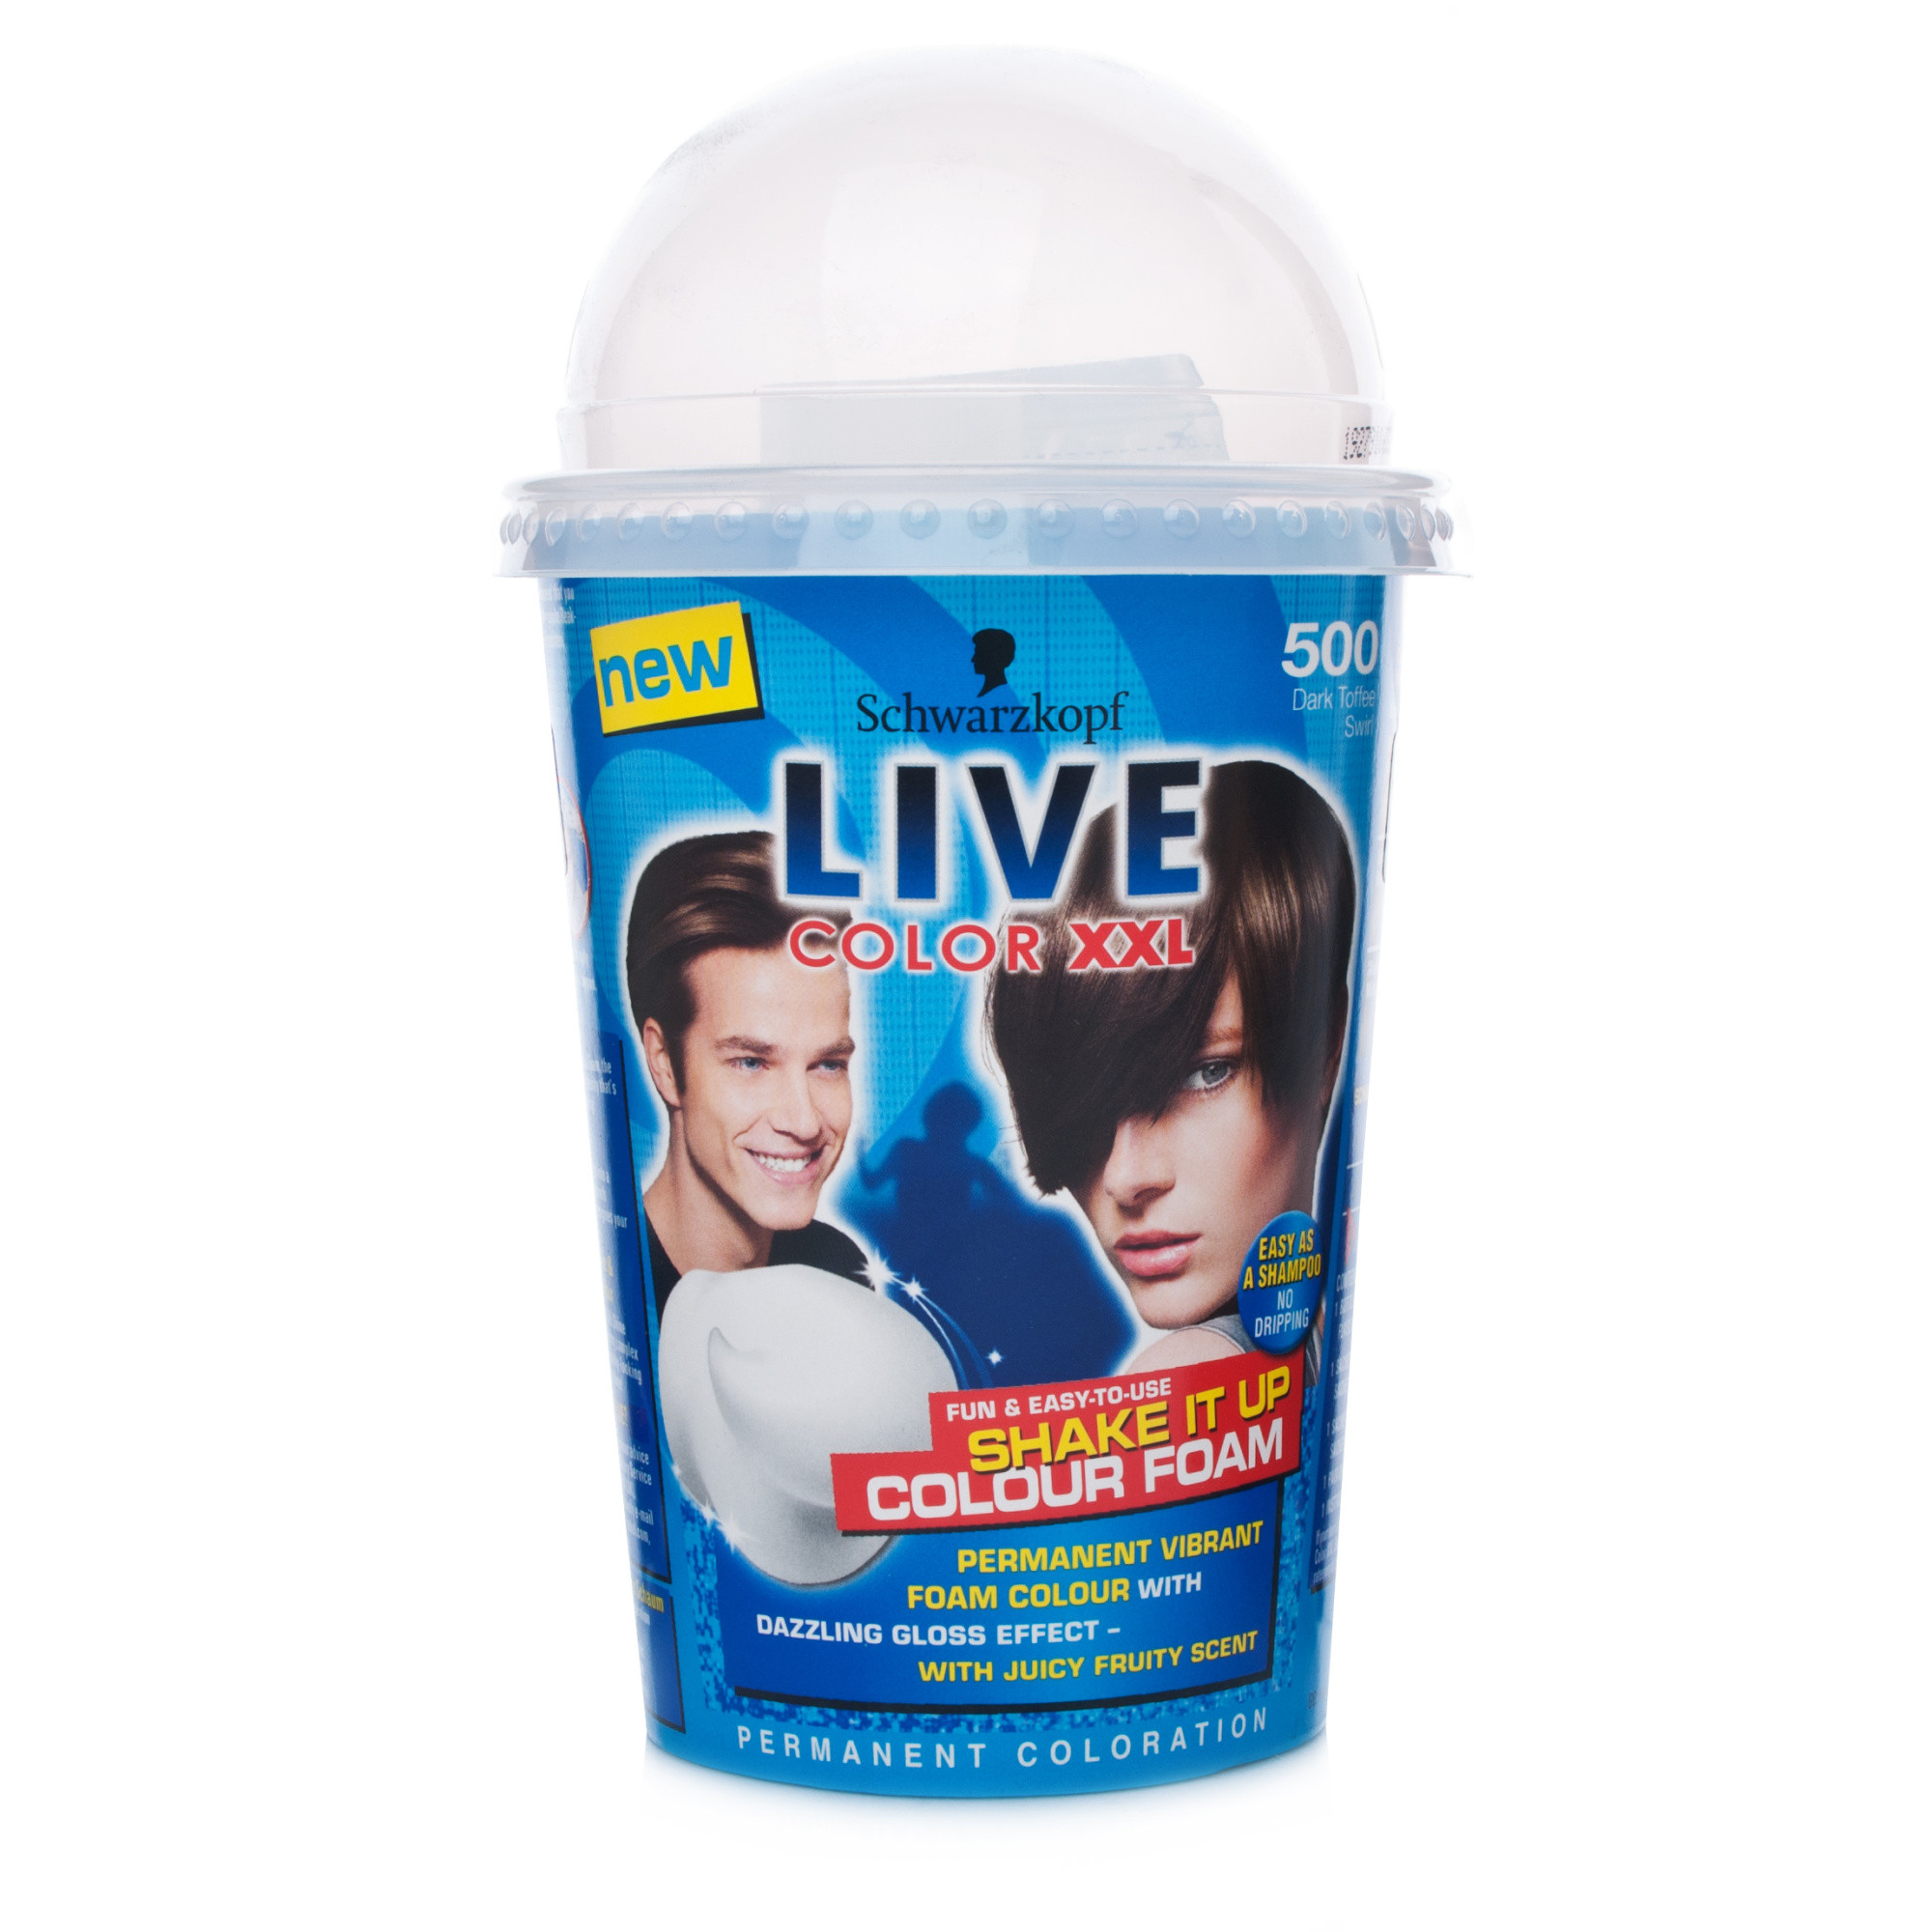 Schwarzkopf Live Colour XXL Shake It Up Foam 500 Dark Toffee Swirl